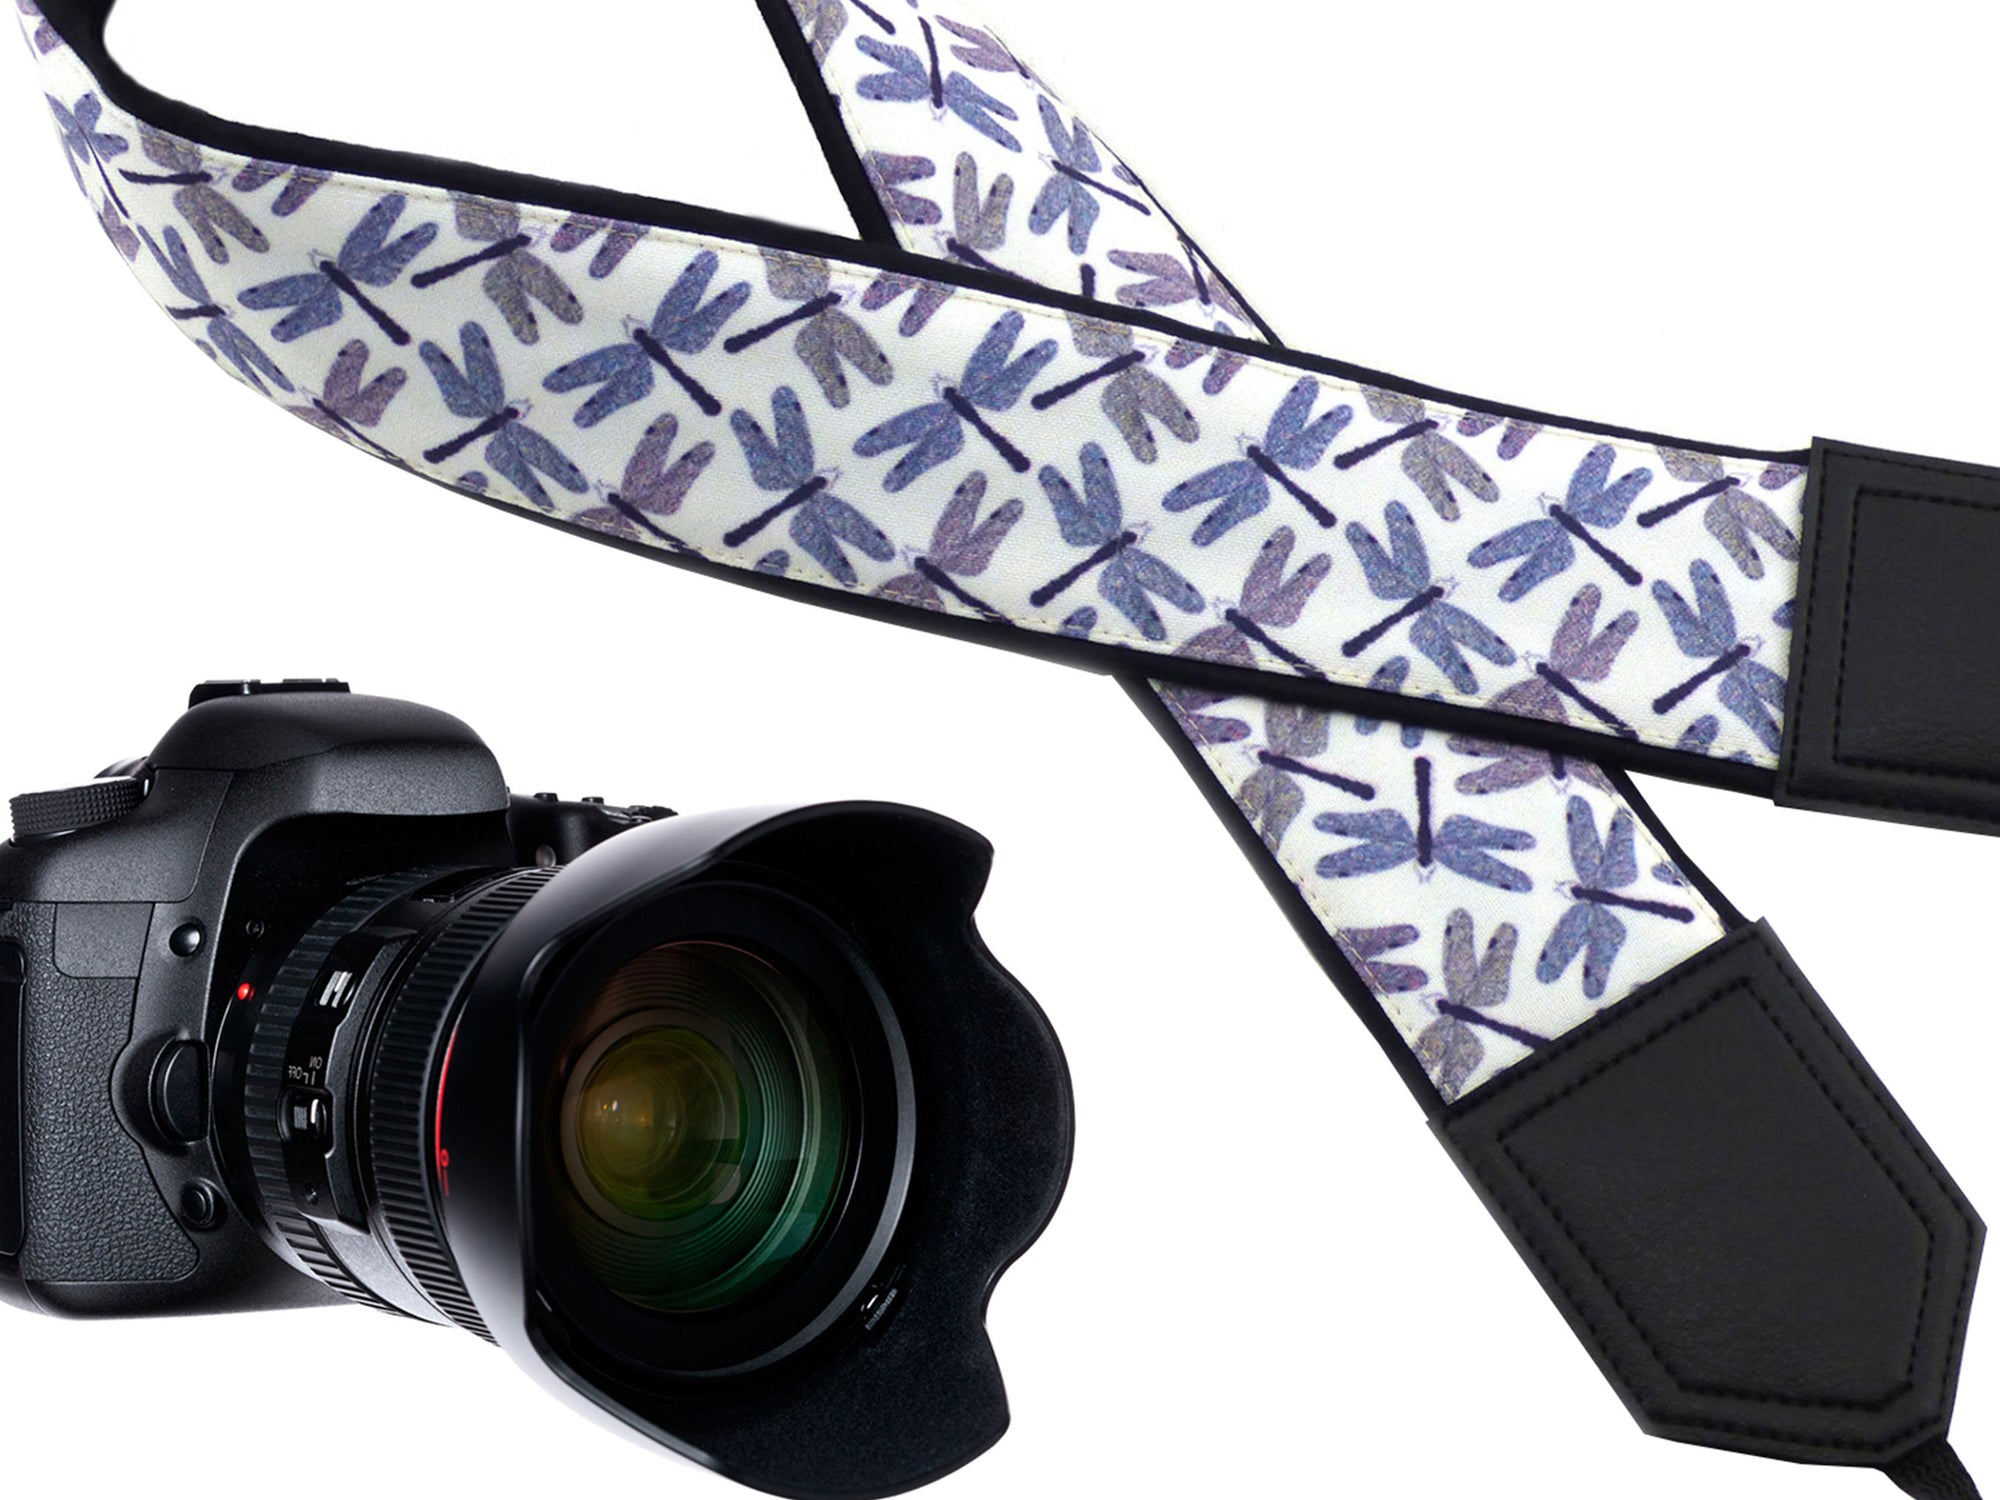 Personalized Camera straps. Dragonflies on white DSLR / SLR Camera Strap. Camera Accessories by InTePro